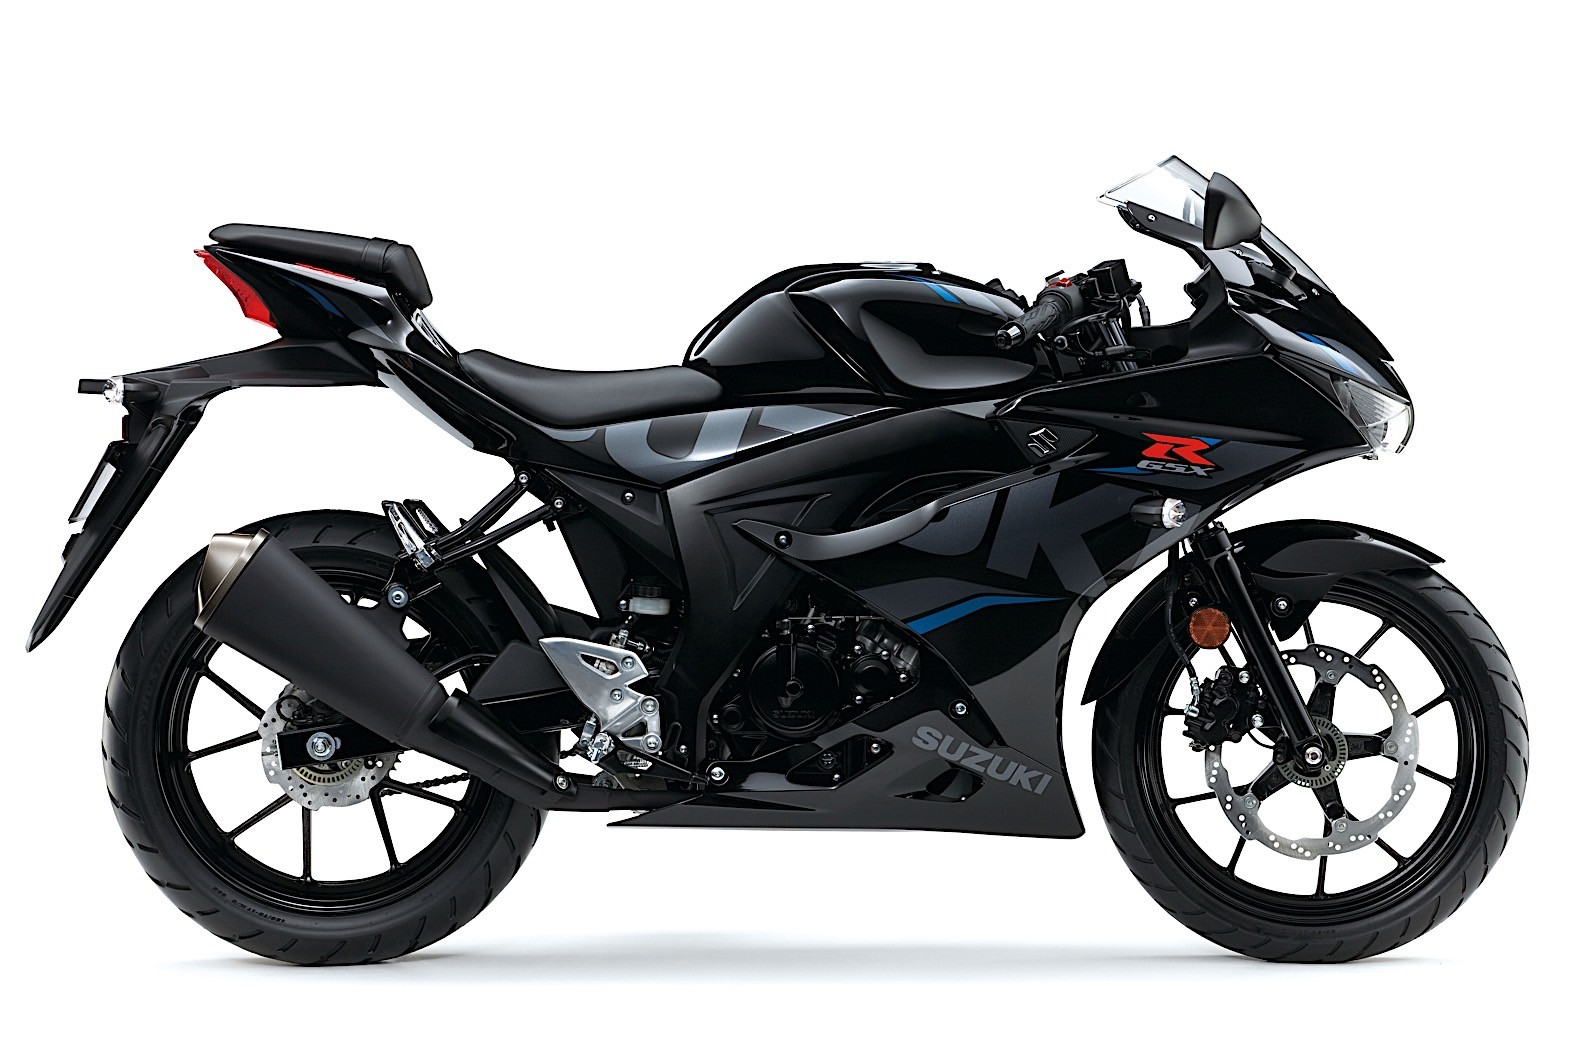 2019-suzuki-motorcycles-shine-in-new-colors-at-the-motorcycle-live-15